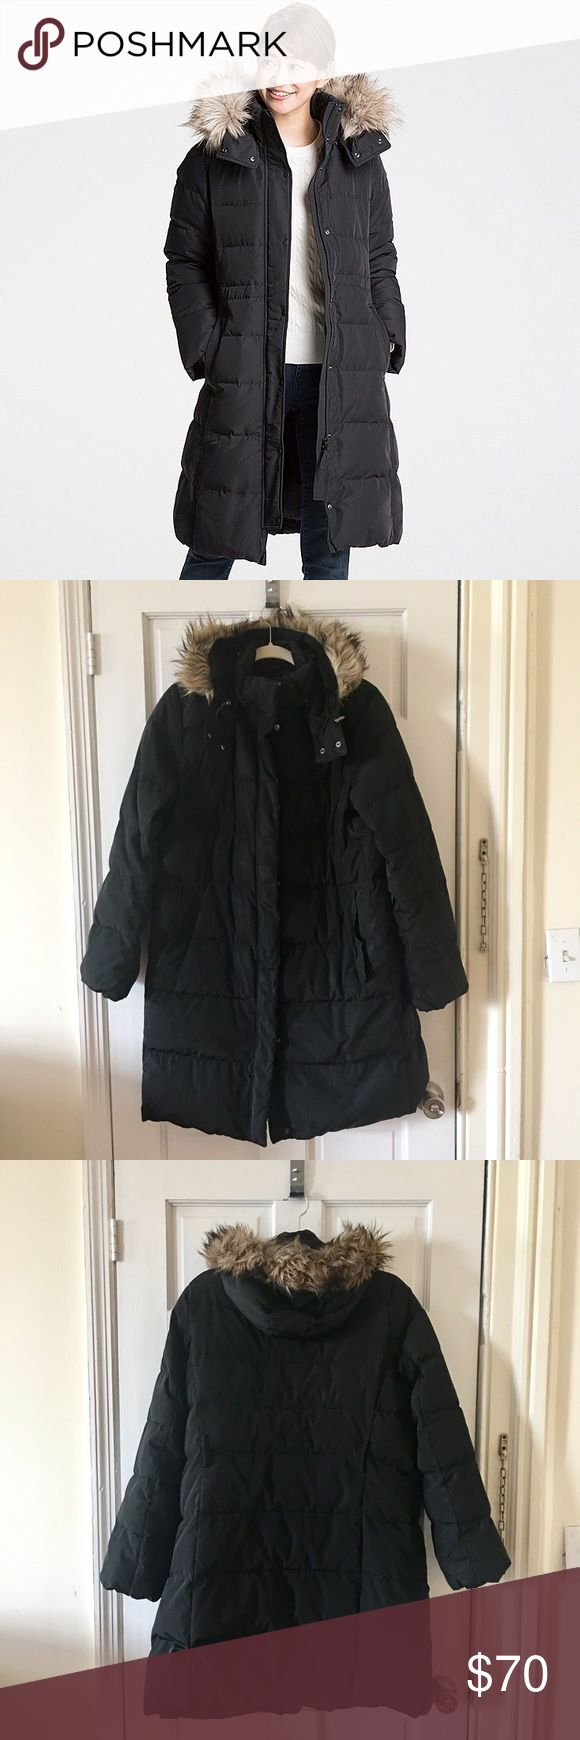 Uniqlo Warm Tech Winter Coat Stay warm this winter with his pre-loved coat from Uniqlo. In very good condition. Hood is detachable. Coat belt is missing. Feel free to make me an offer! Uniqlo Jackets & Coats Puffers